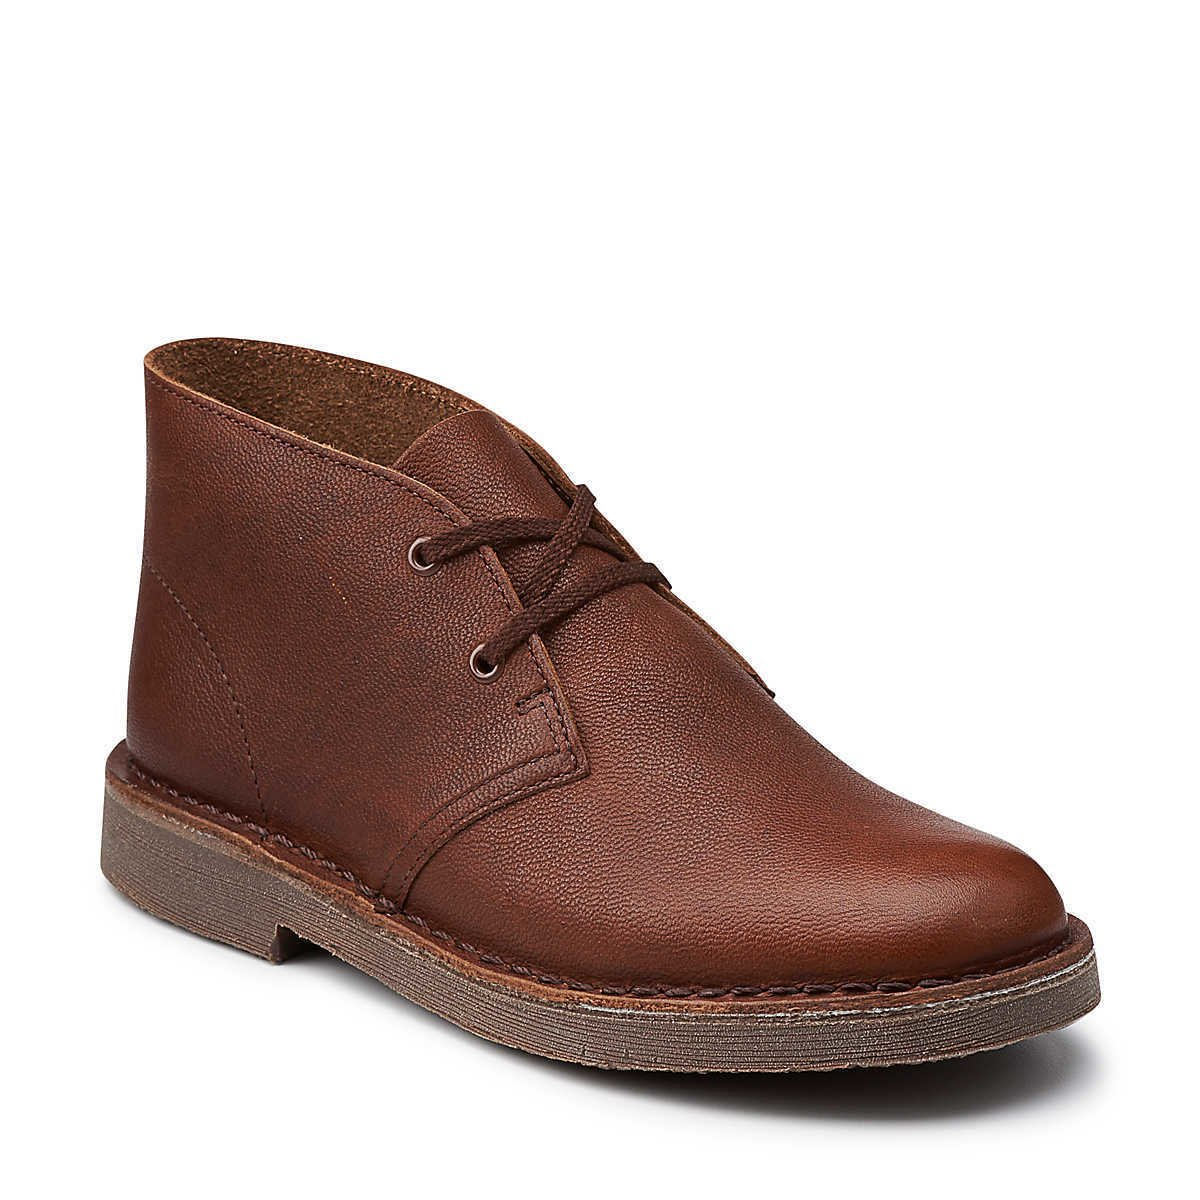 Desert Boot by Clarks $70.00  The simple and classic Desert Boot is stylish and wearable for every season.  Holiday Gift Guide: The Mini Modernist  by Jami Smith